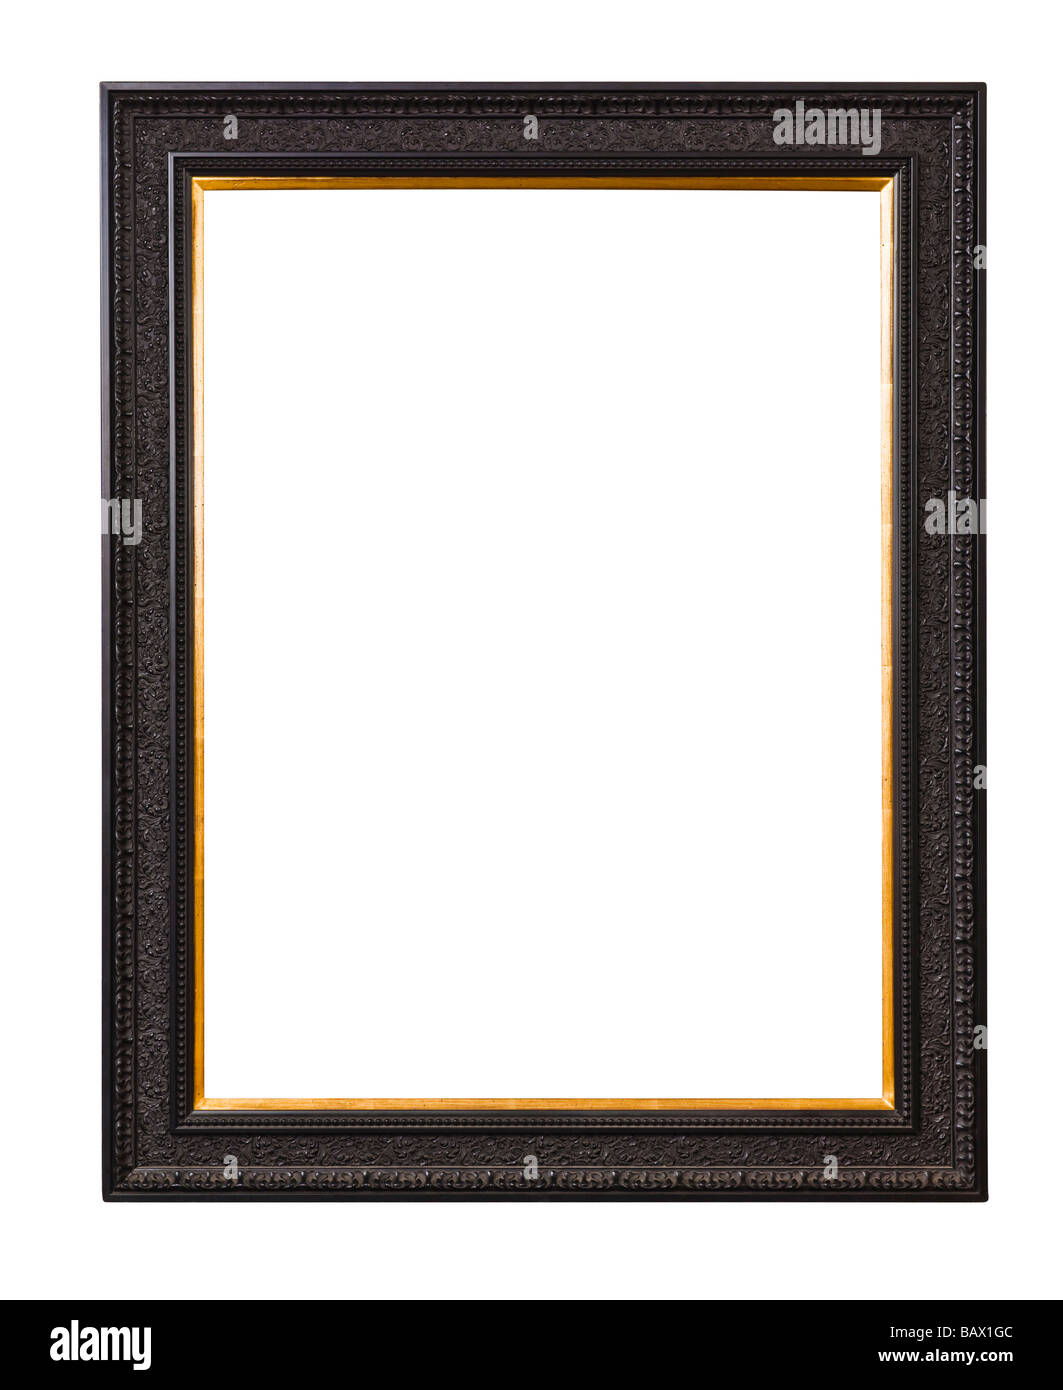 Ornate wooden picture frame - Stock Image